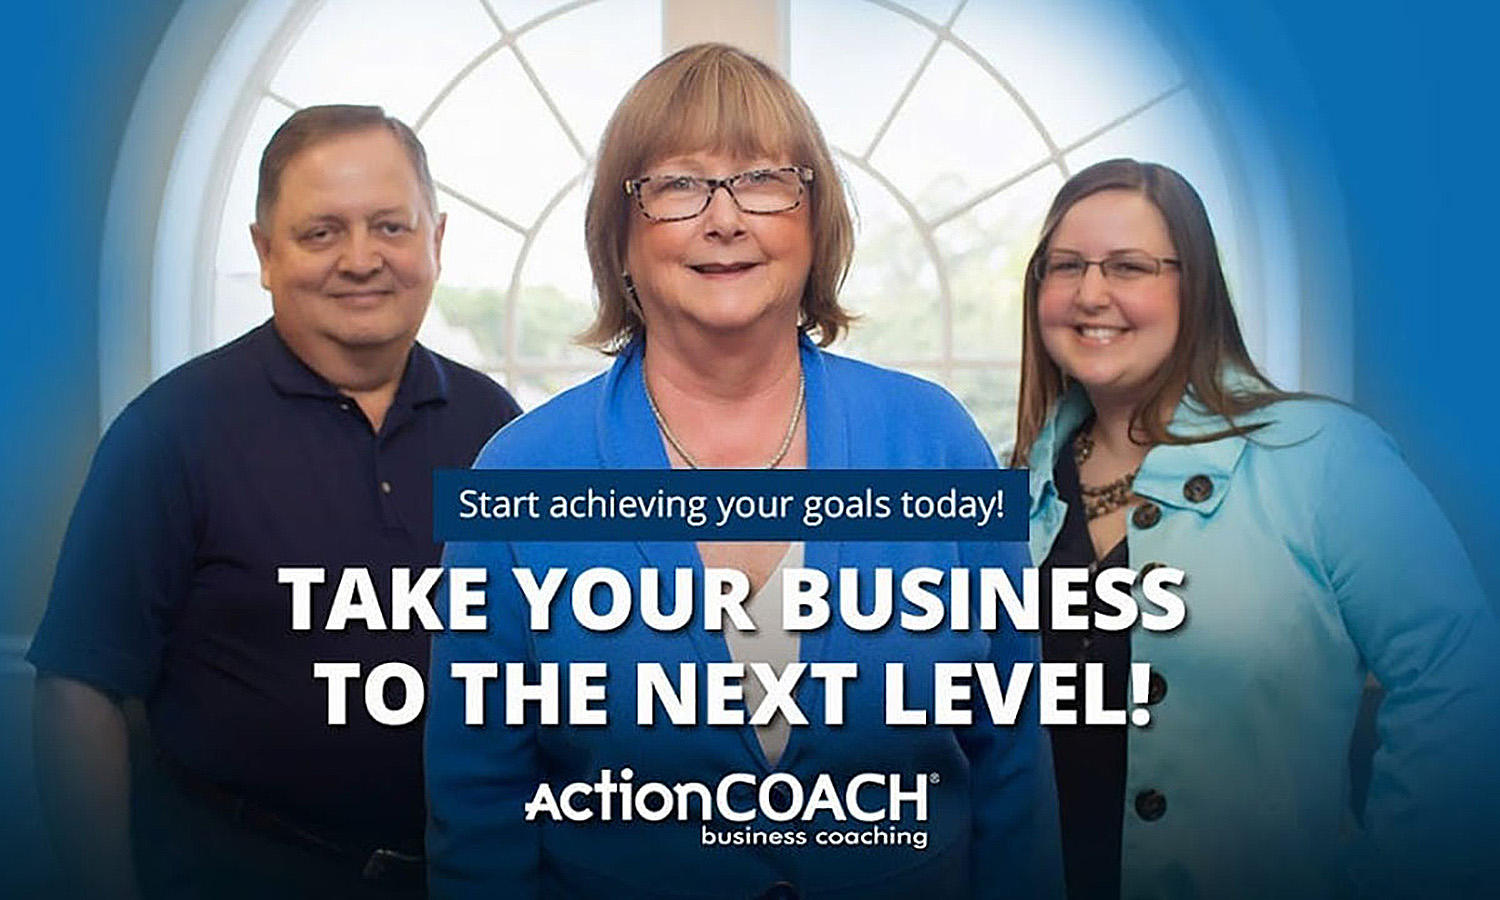 proud-to-be-an-actioncoach-barbara-kyes-featured